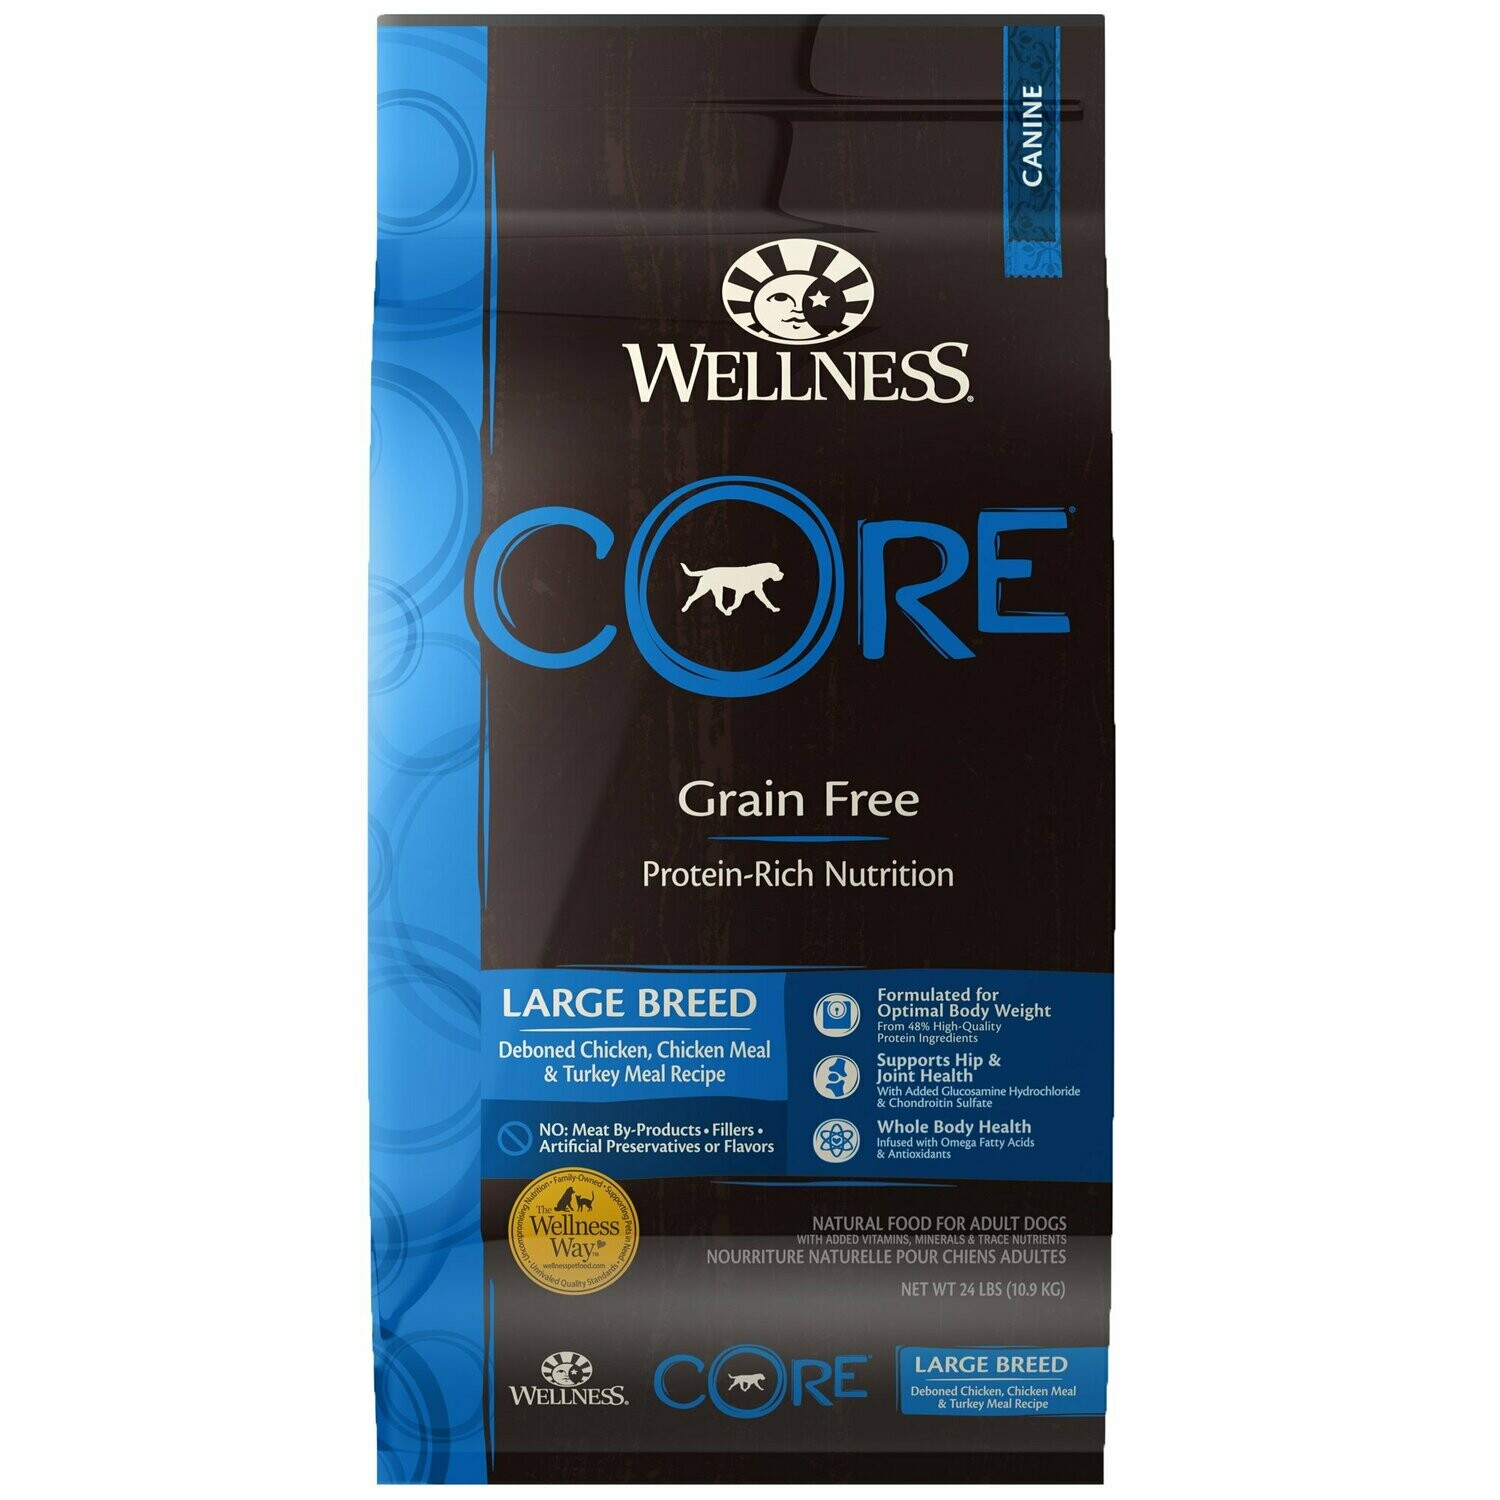 Wellness core large breed grain free protein rich nutrition de-boned chicken chicken meal and turkey mail recipe for dogs 24 lbs (5/20)